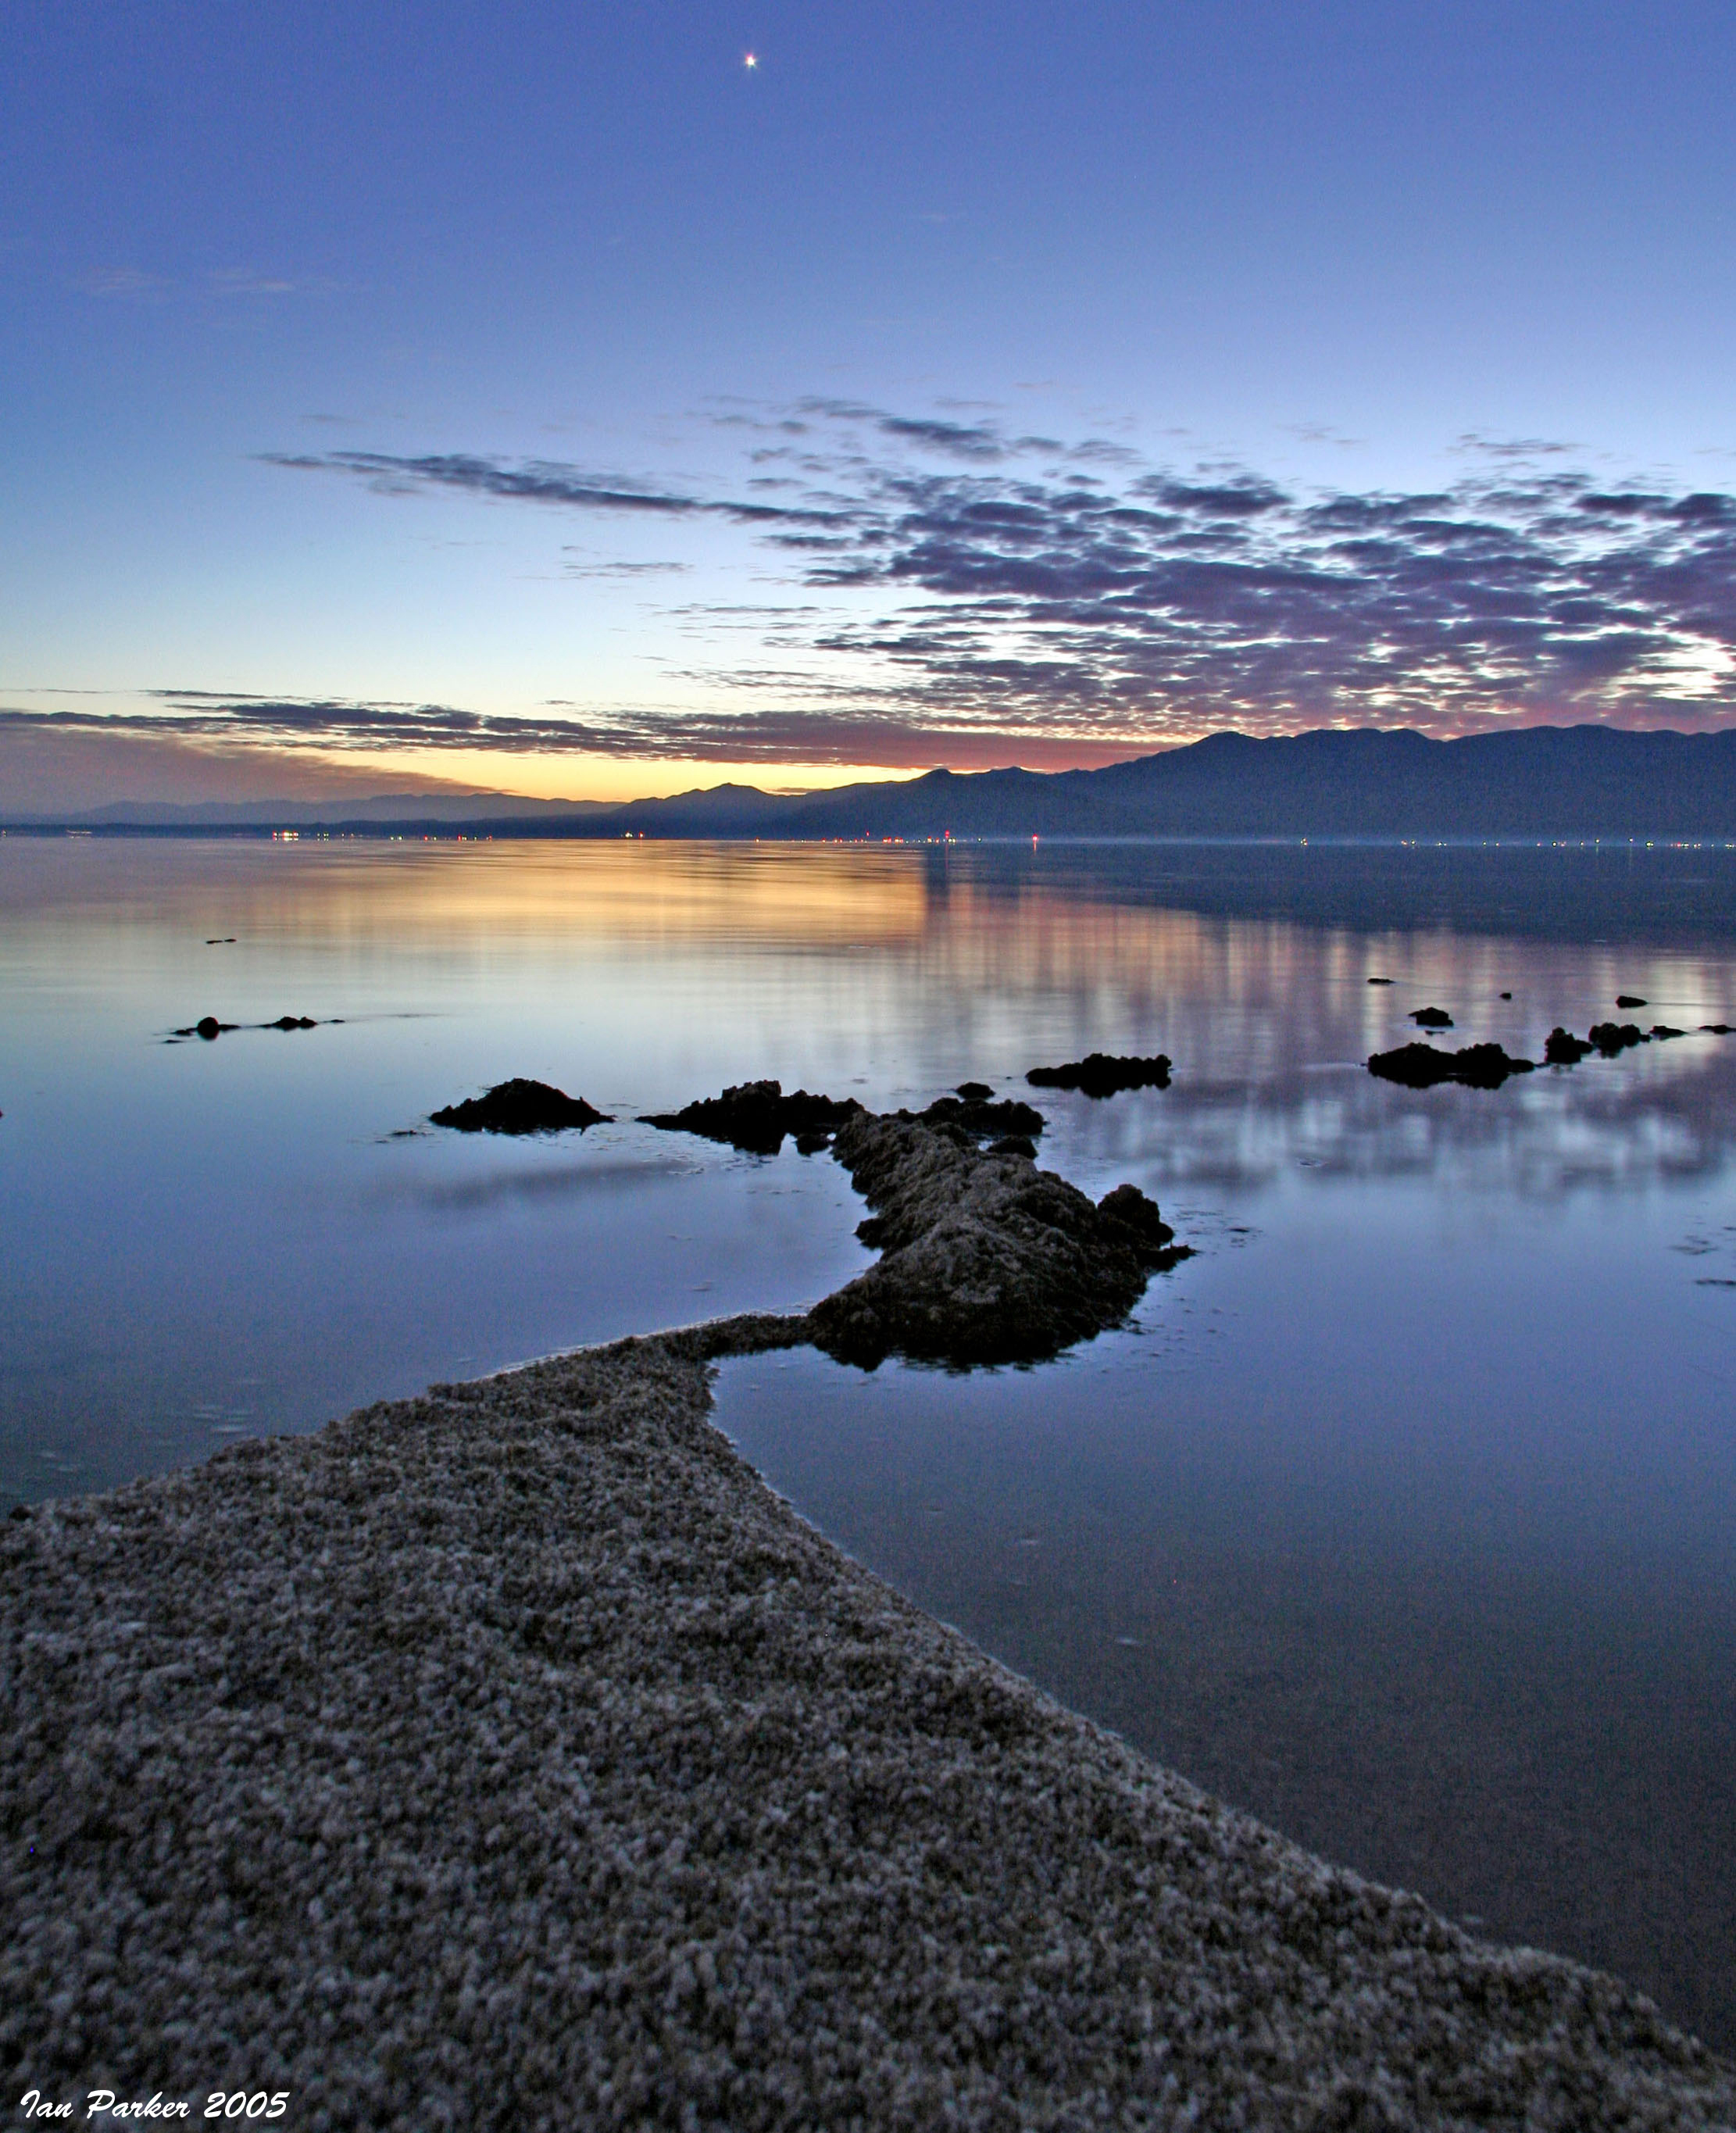 Venus over salton sea